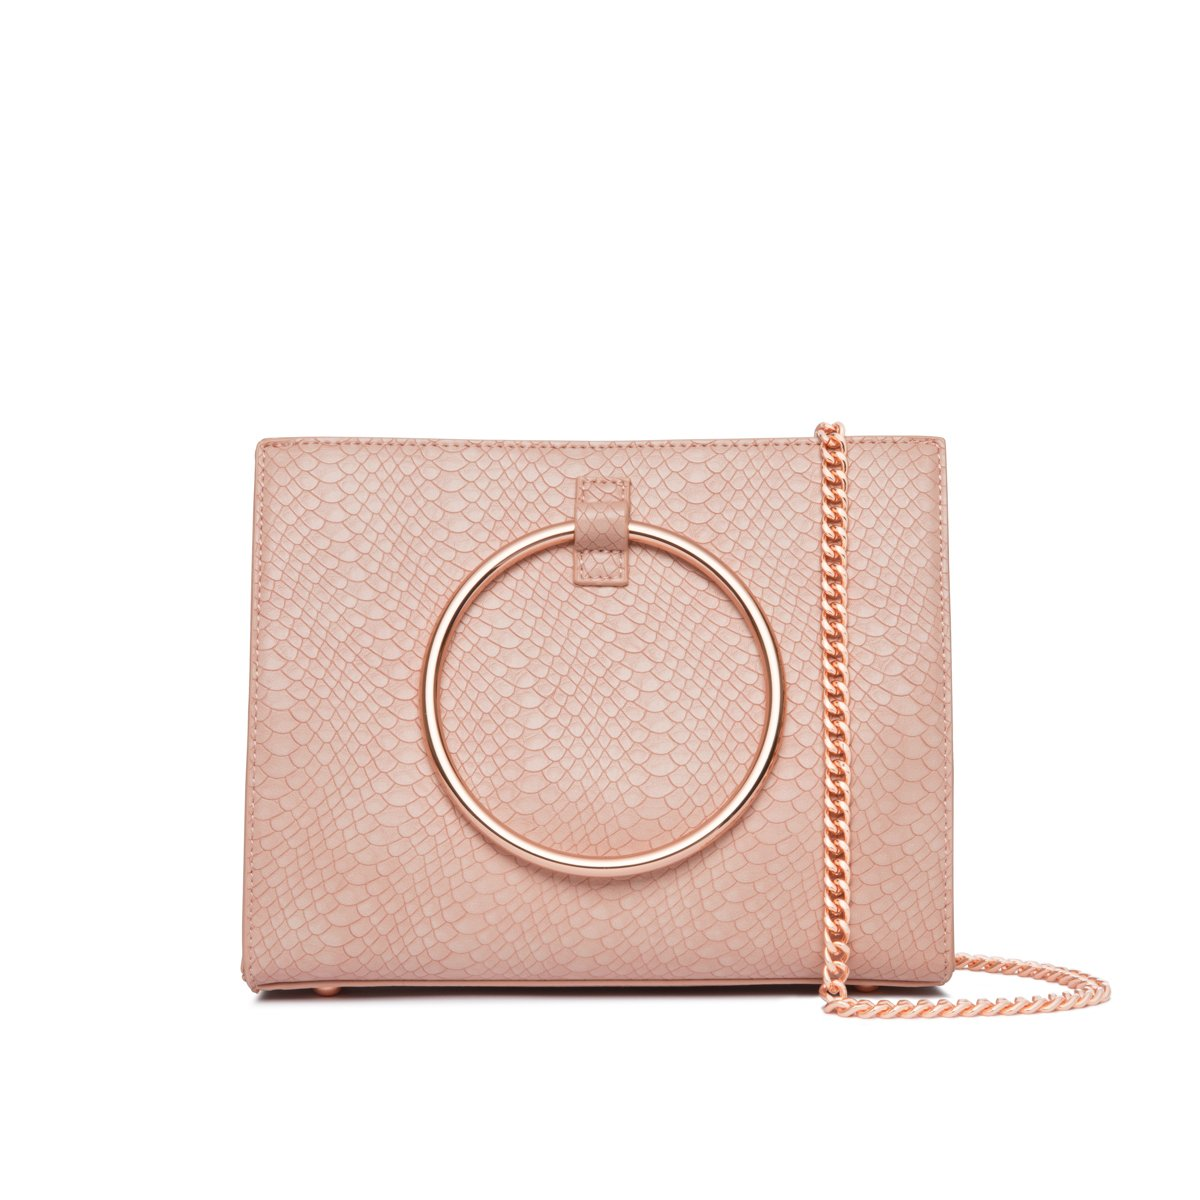 Moda Top Handle Bag (Carnation Pink/Rose Gold)